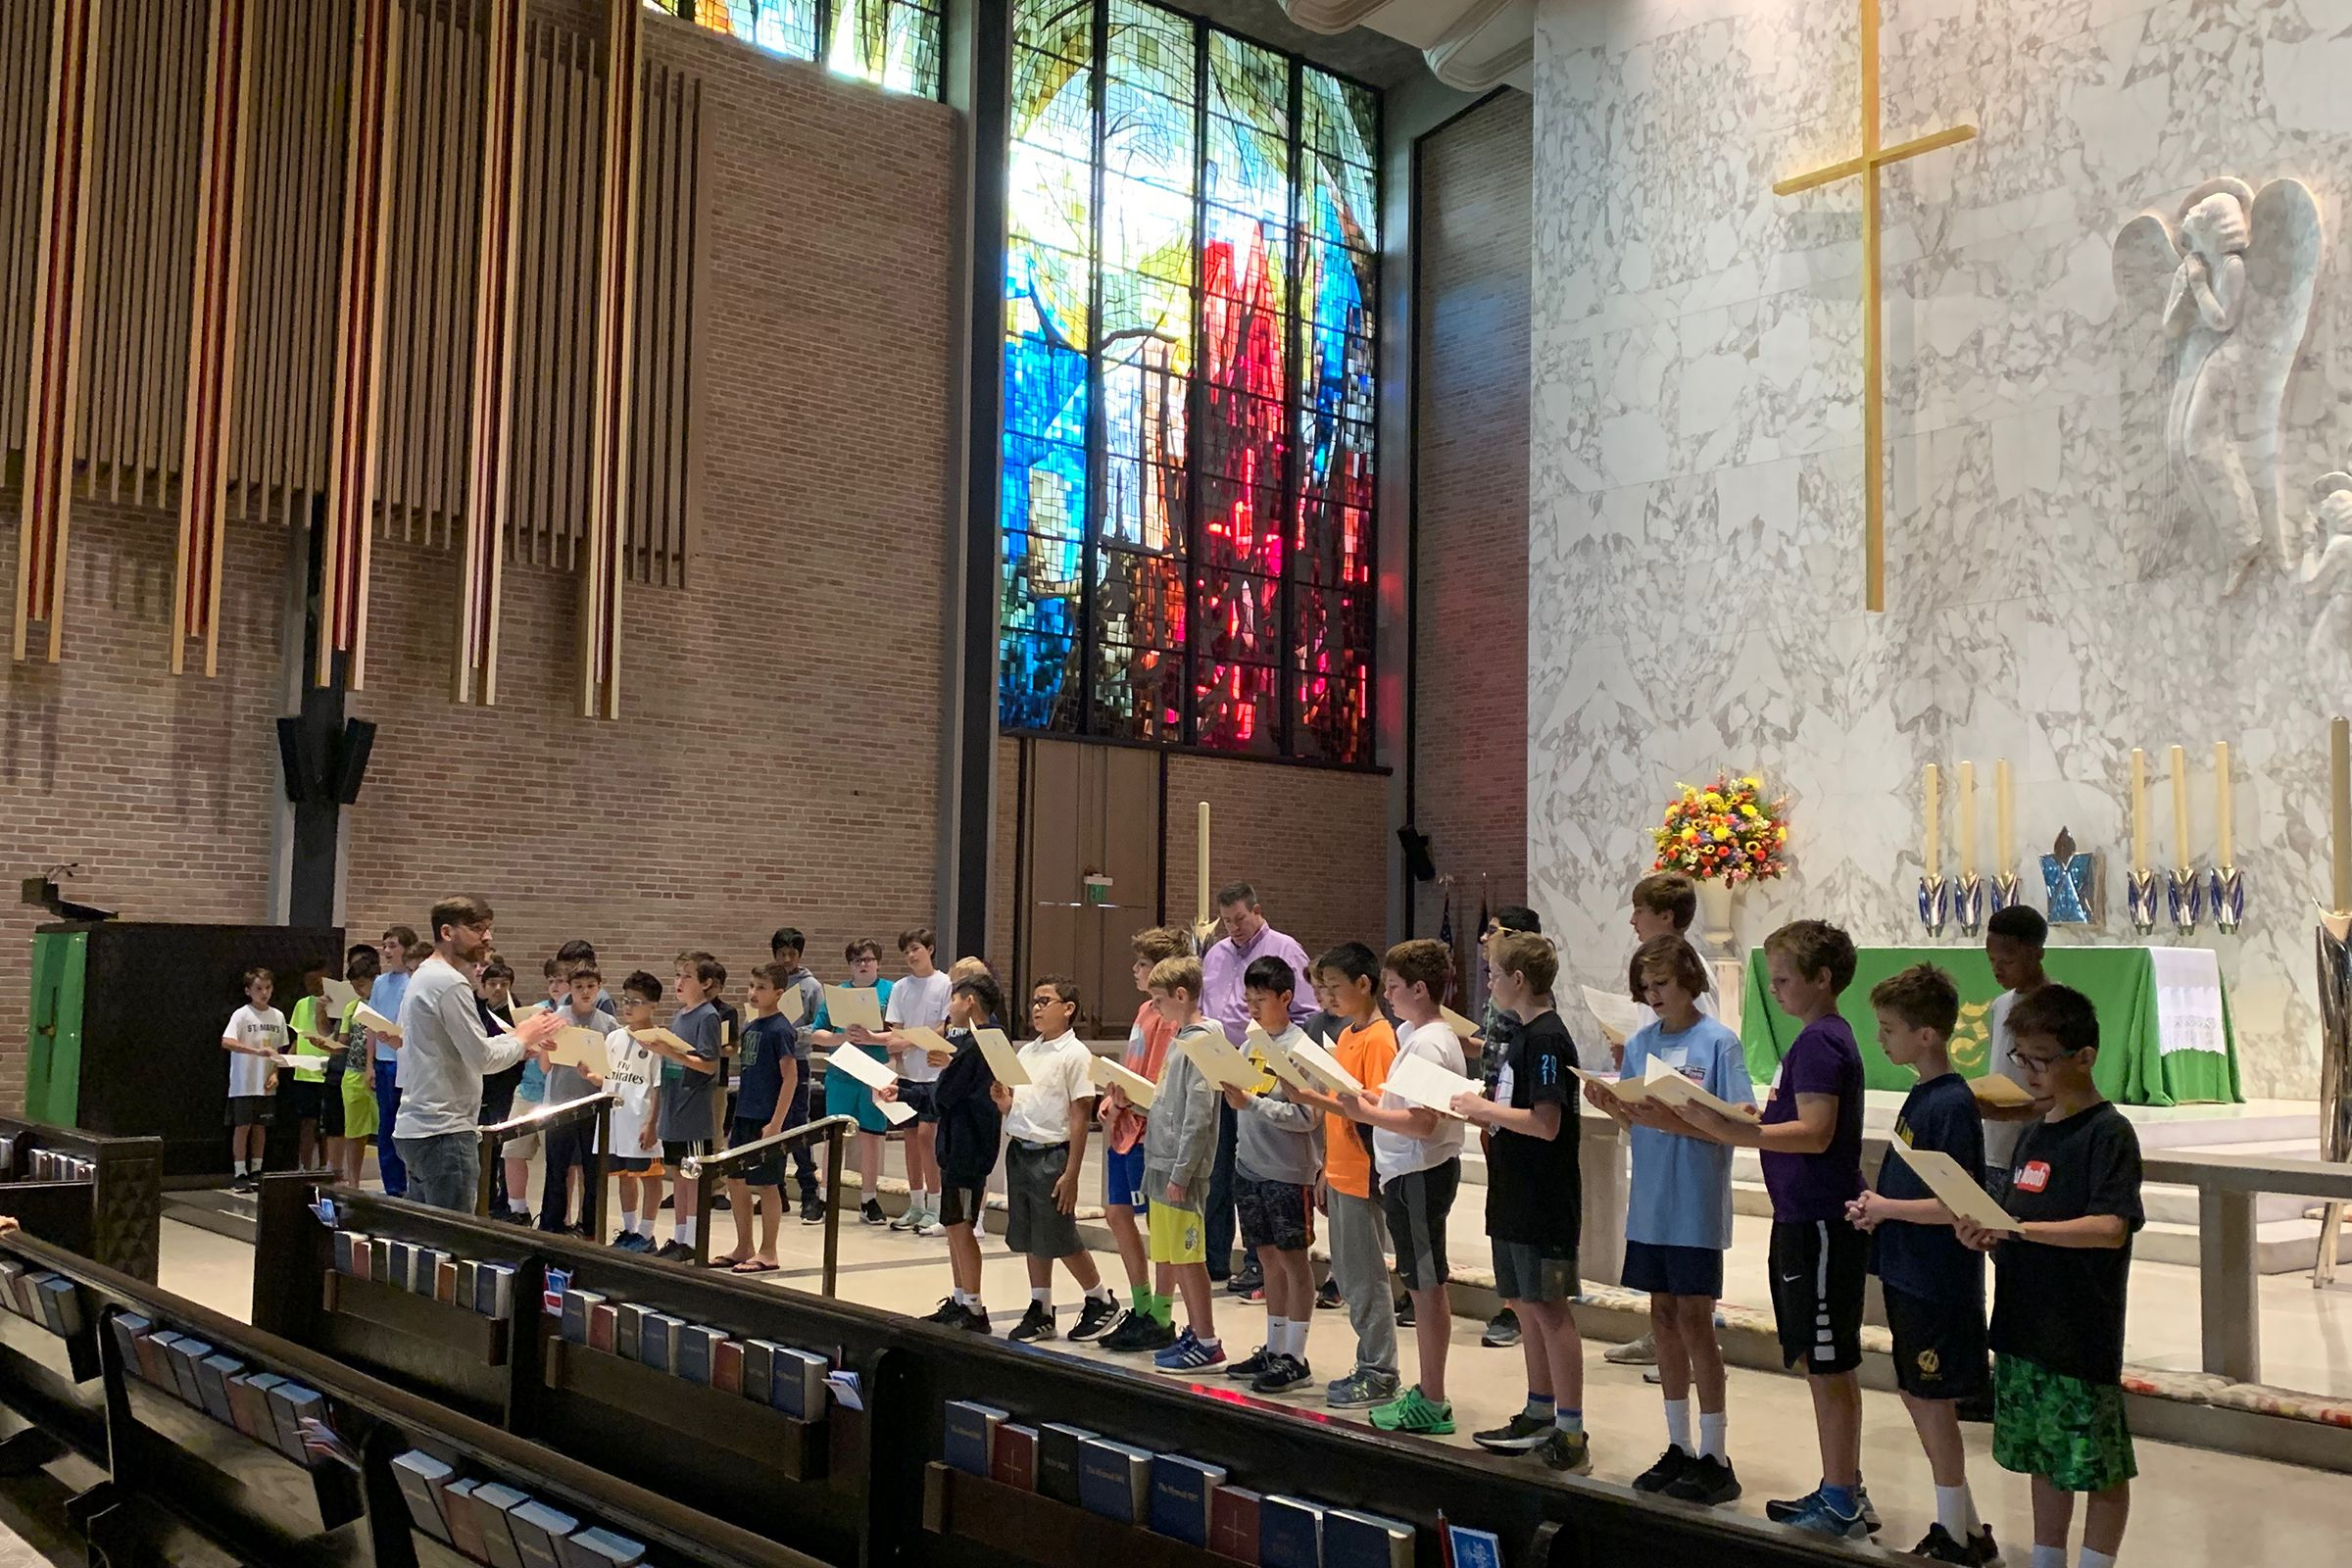 The Middle School Choir rehearses at Saint Michael and All Angels Episcopal Church in preparation for November